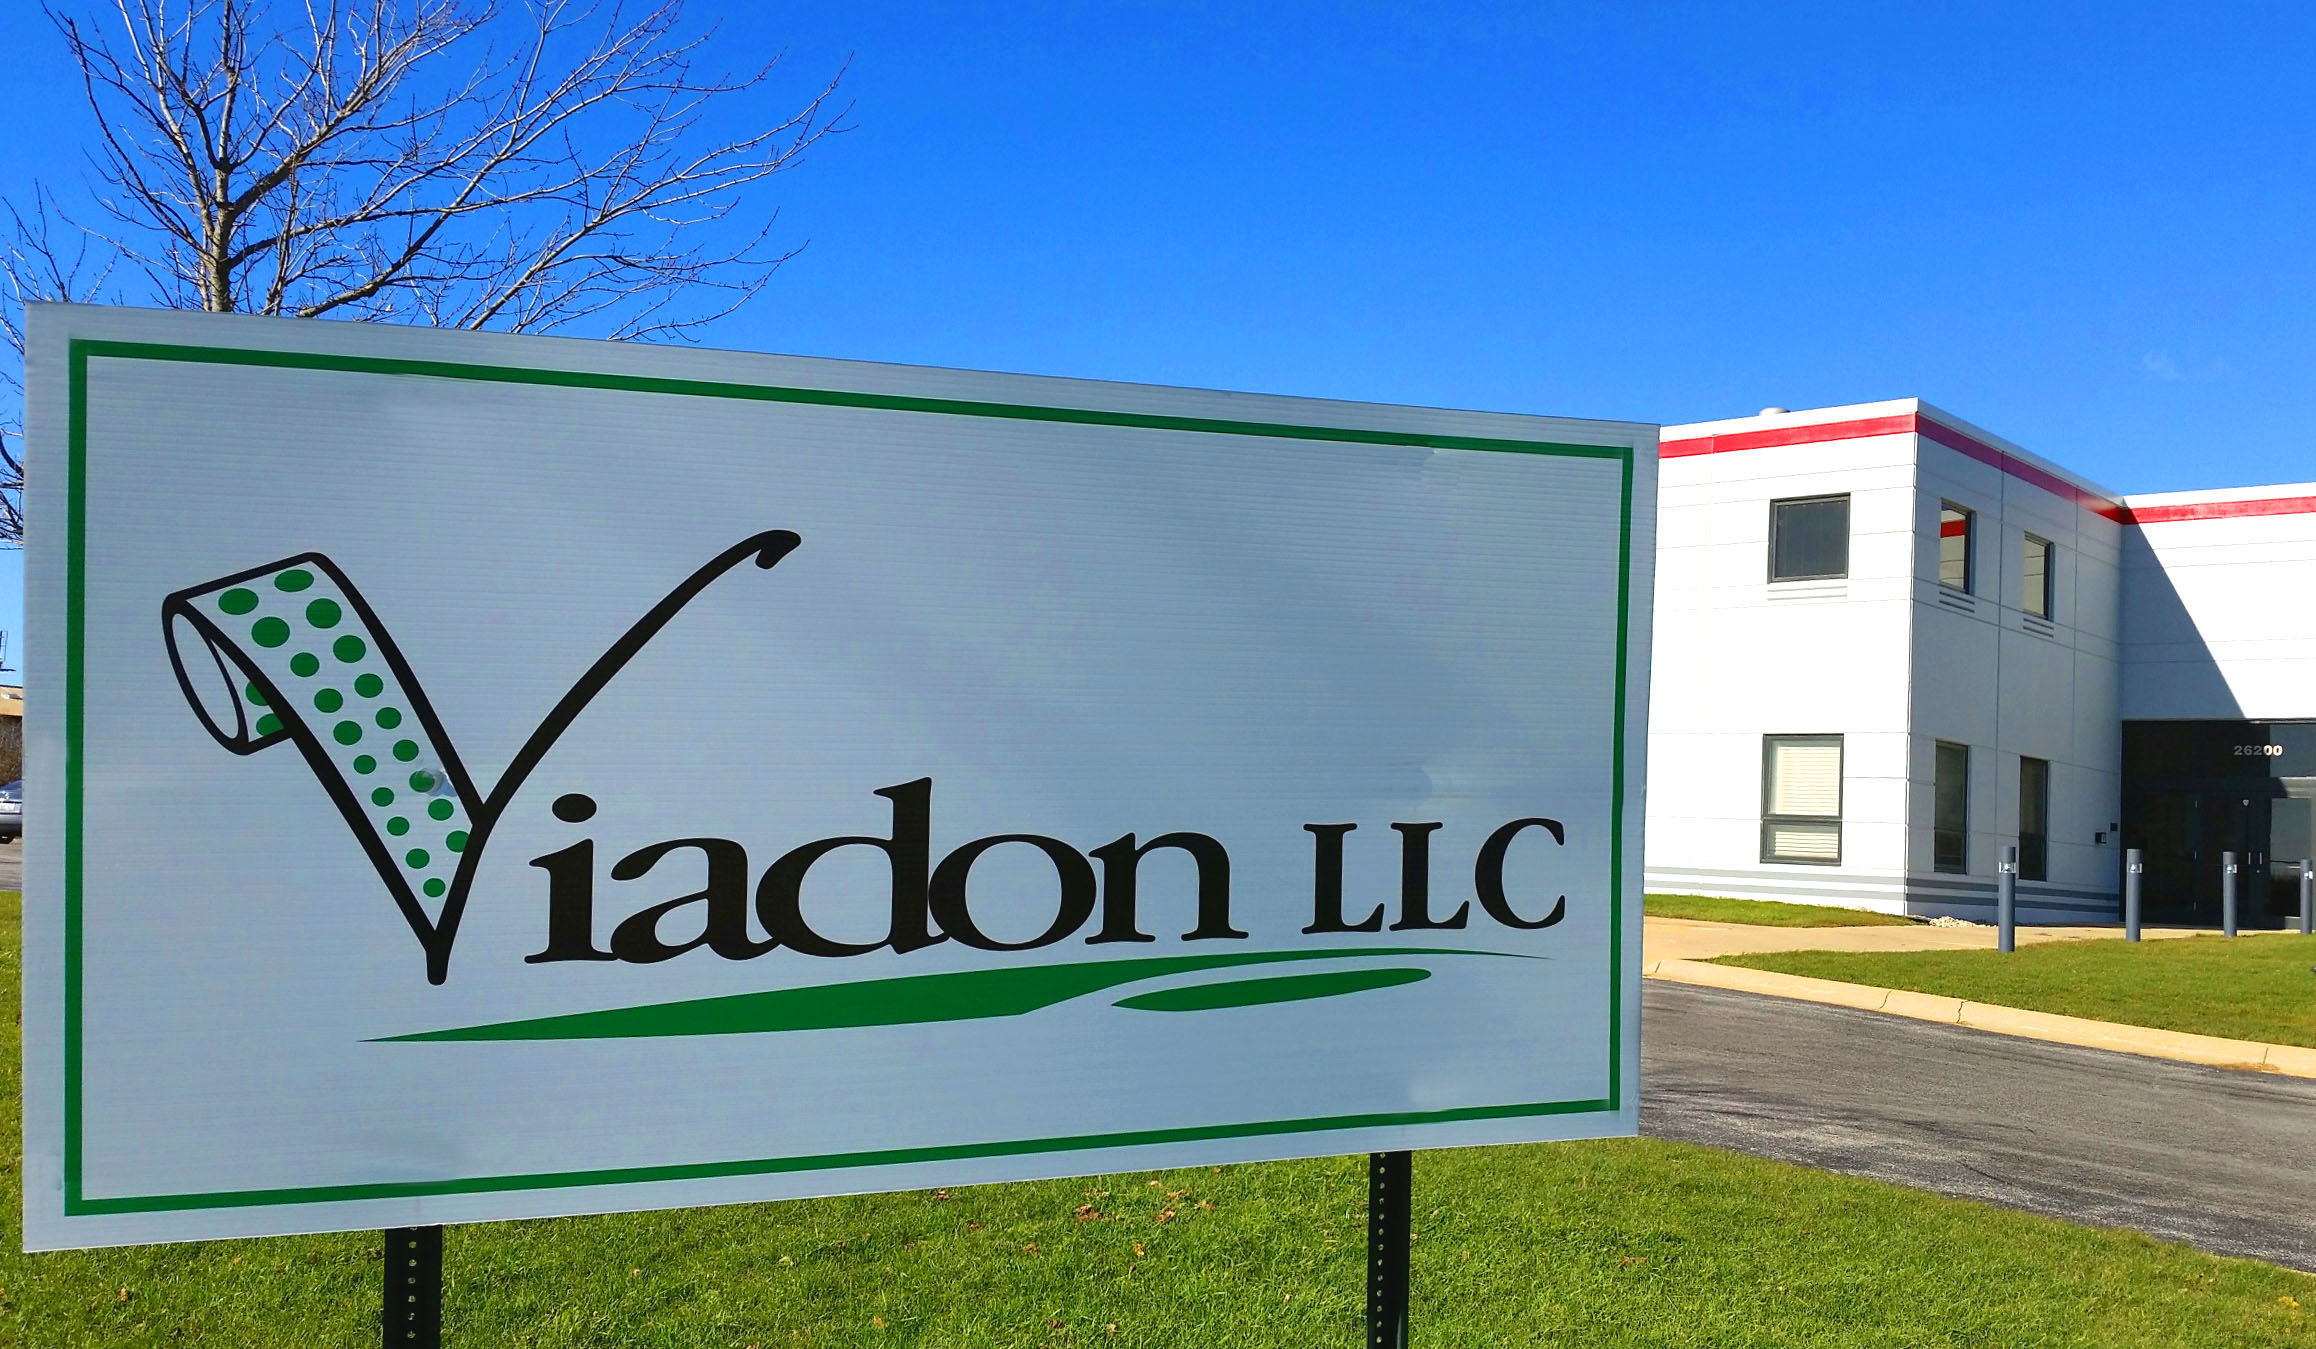 Viadon sign and building